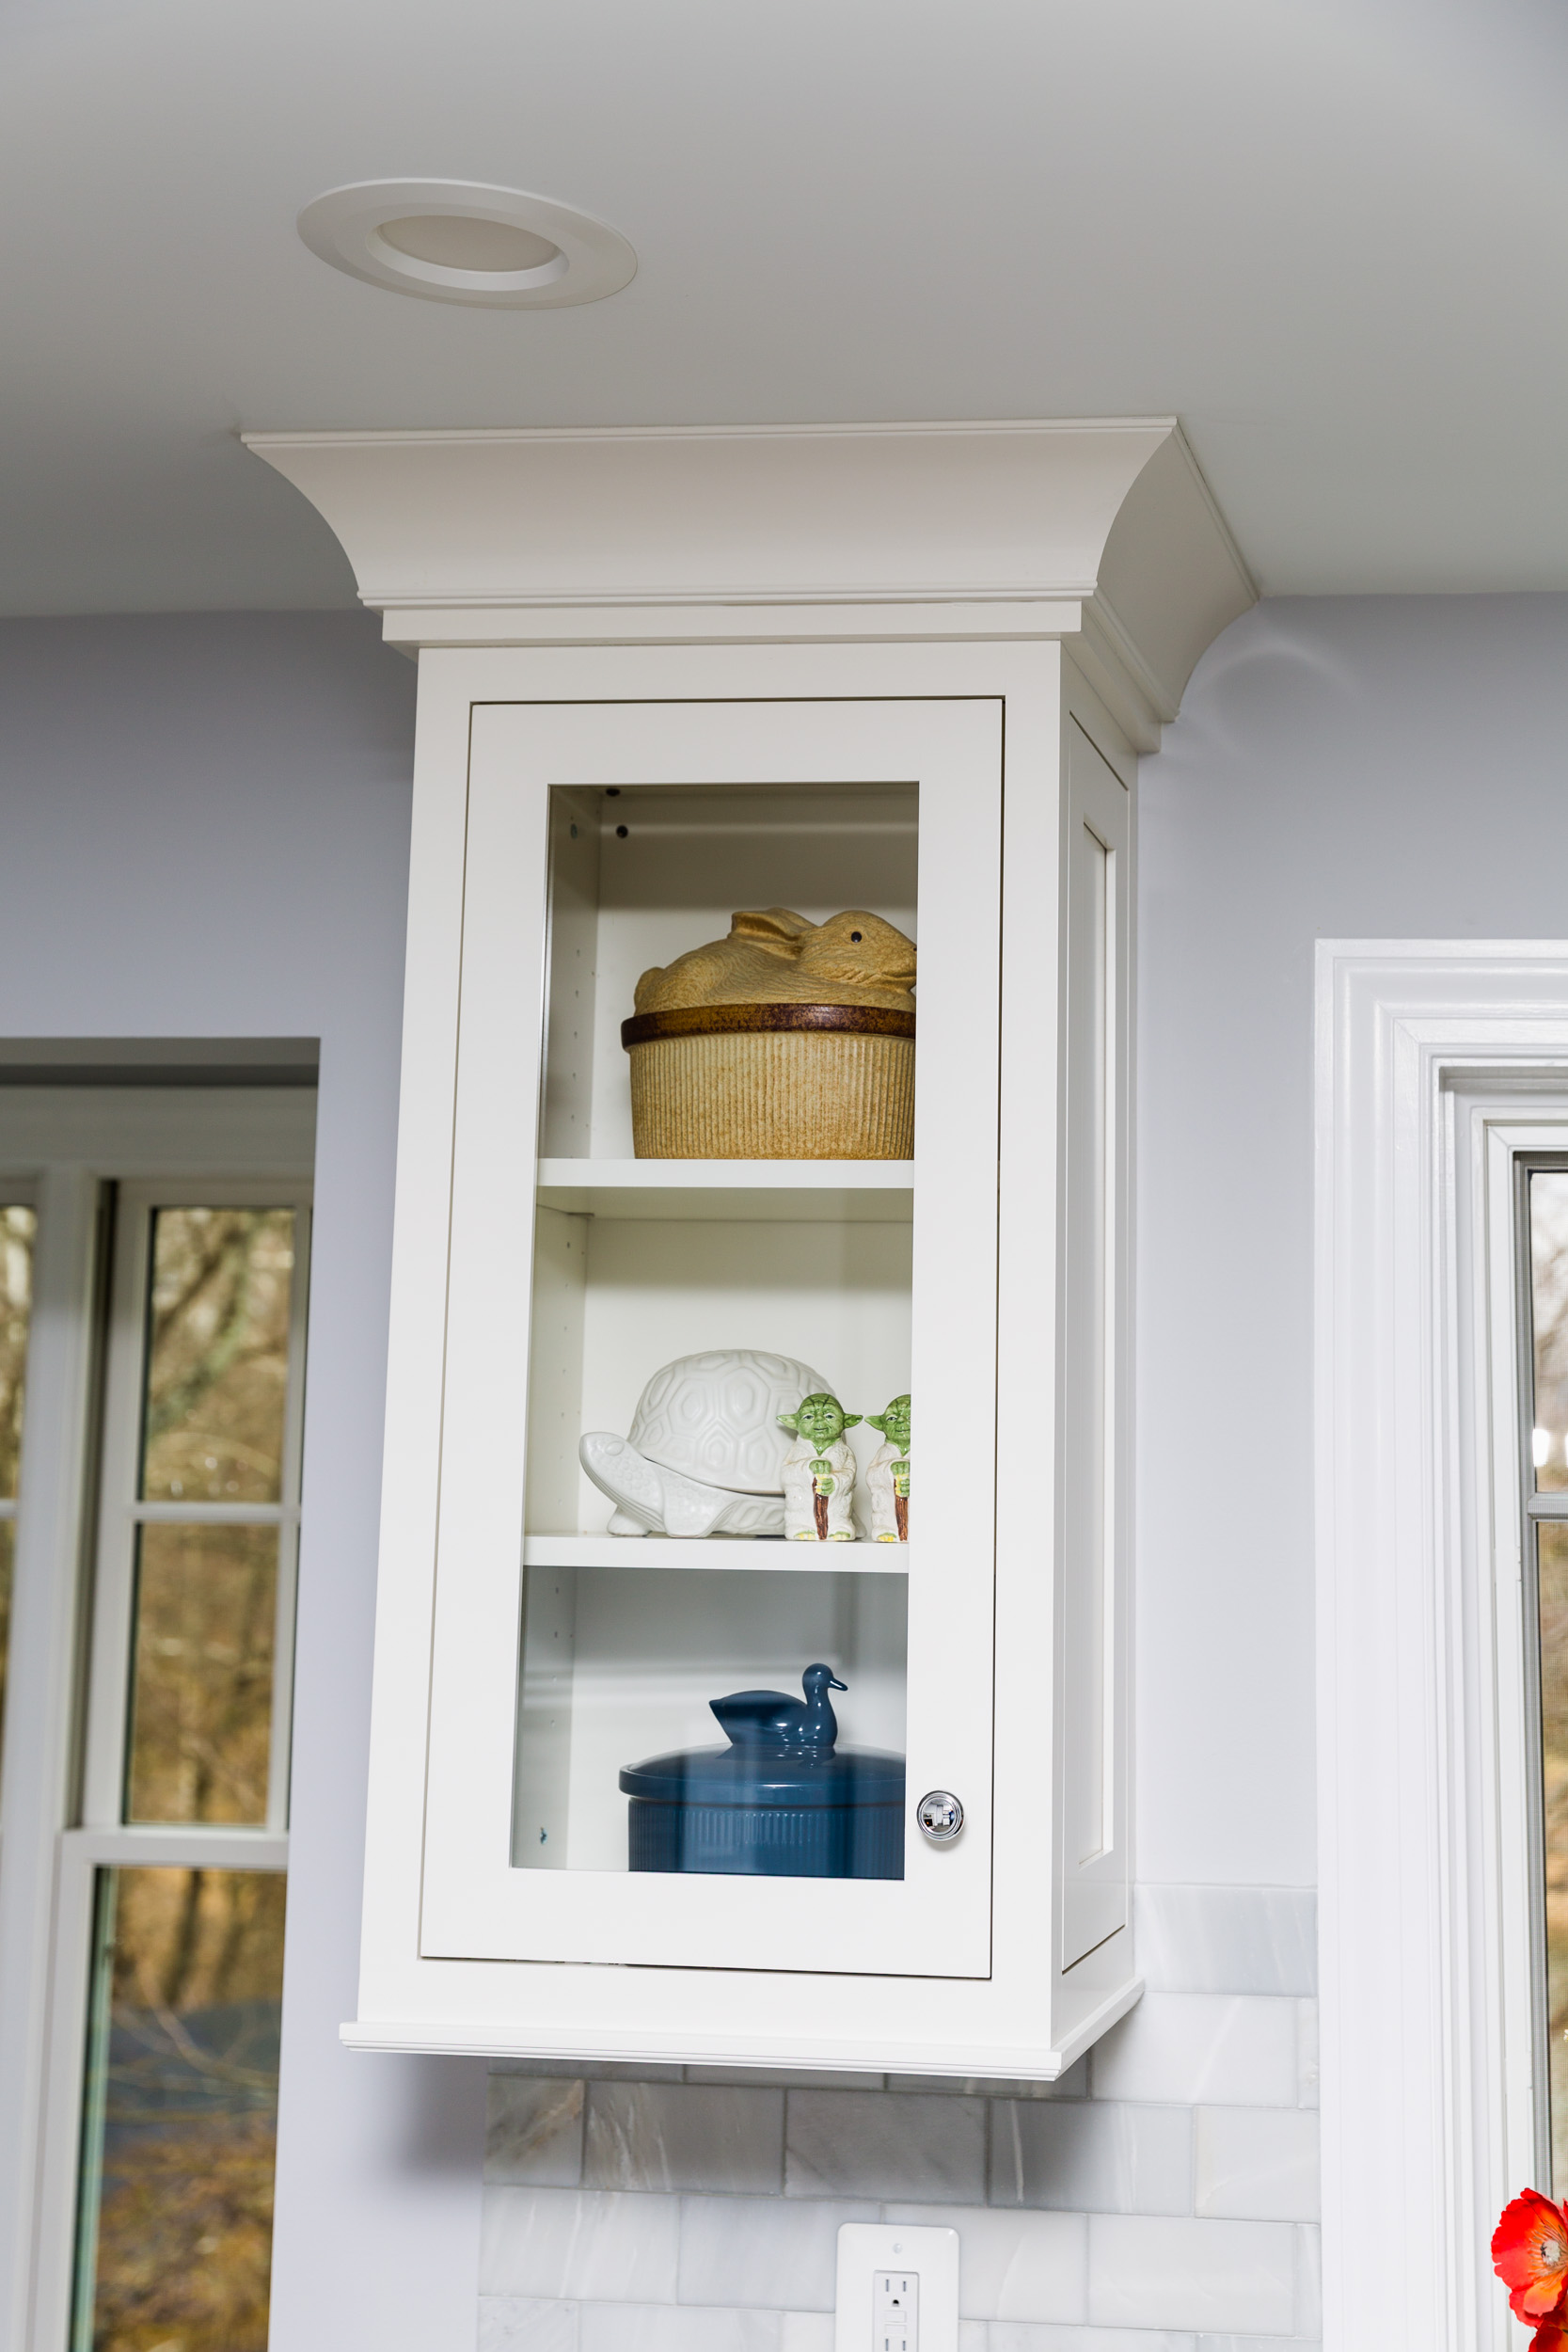 Wood Molding And Trim Woodharbor Custom Cabinetry